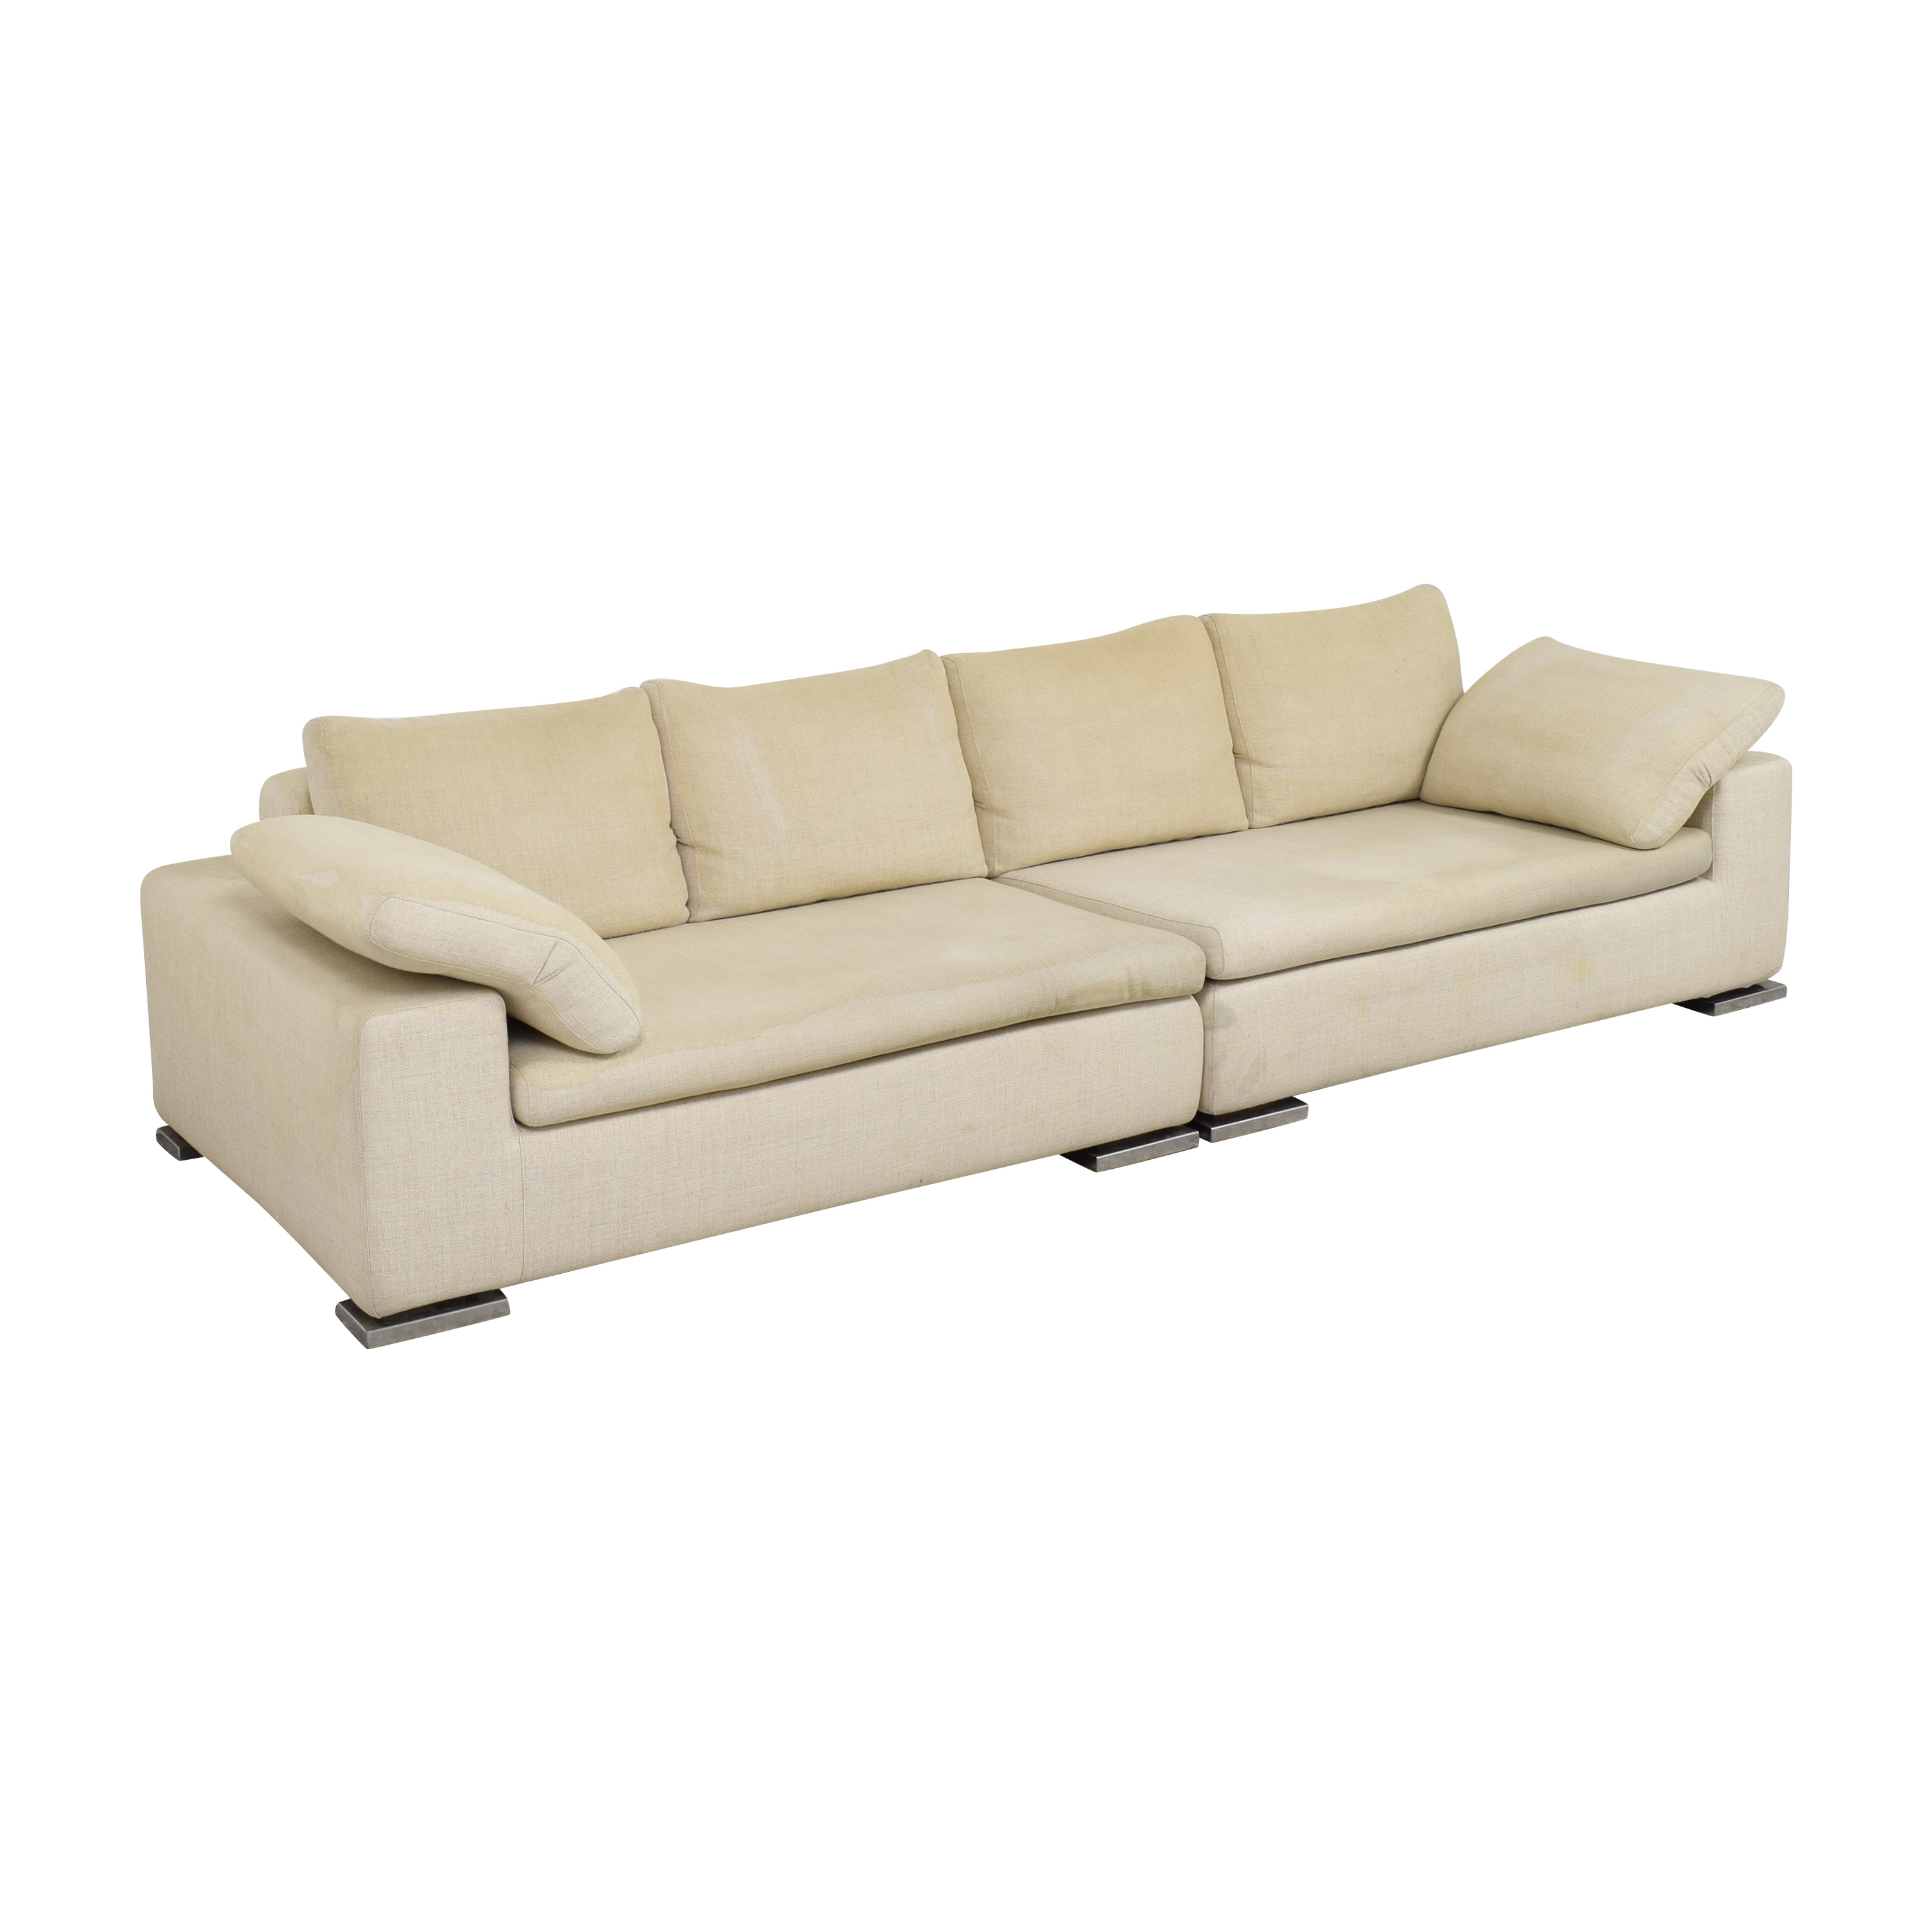 Symmetrical Two Piece Sectional Sofa dimensions